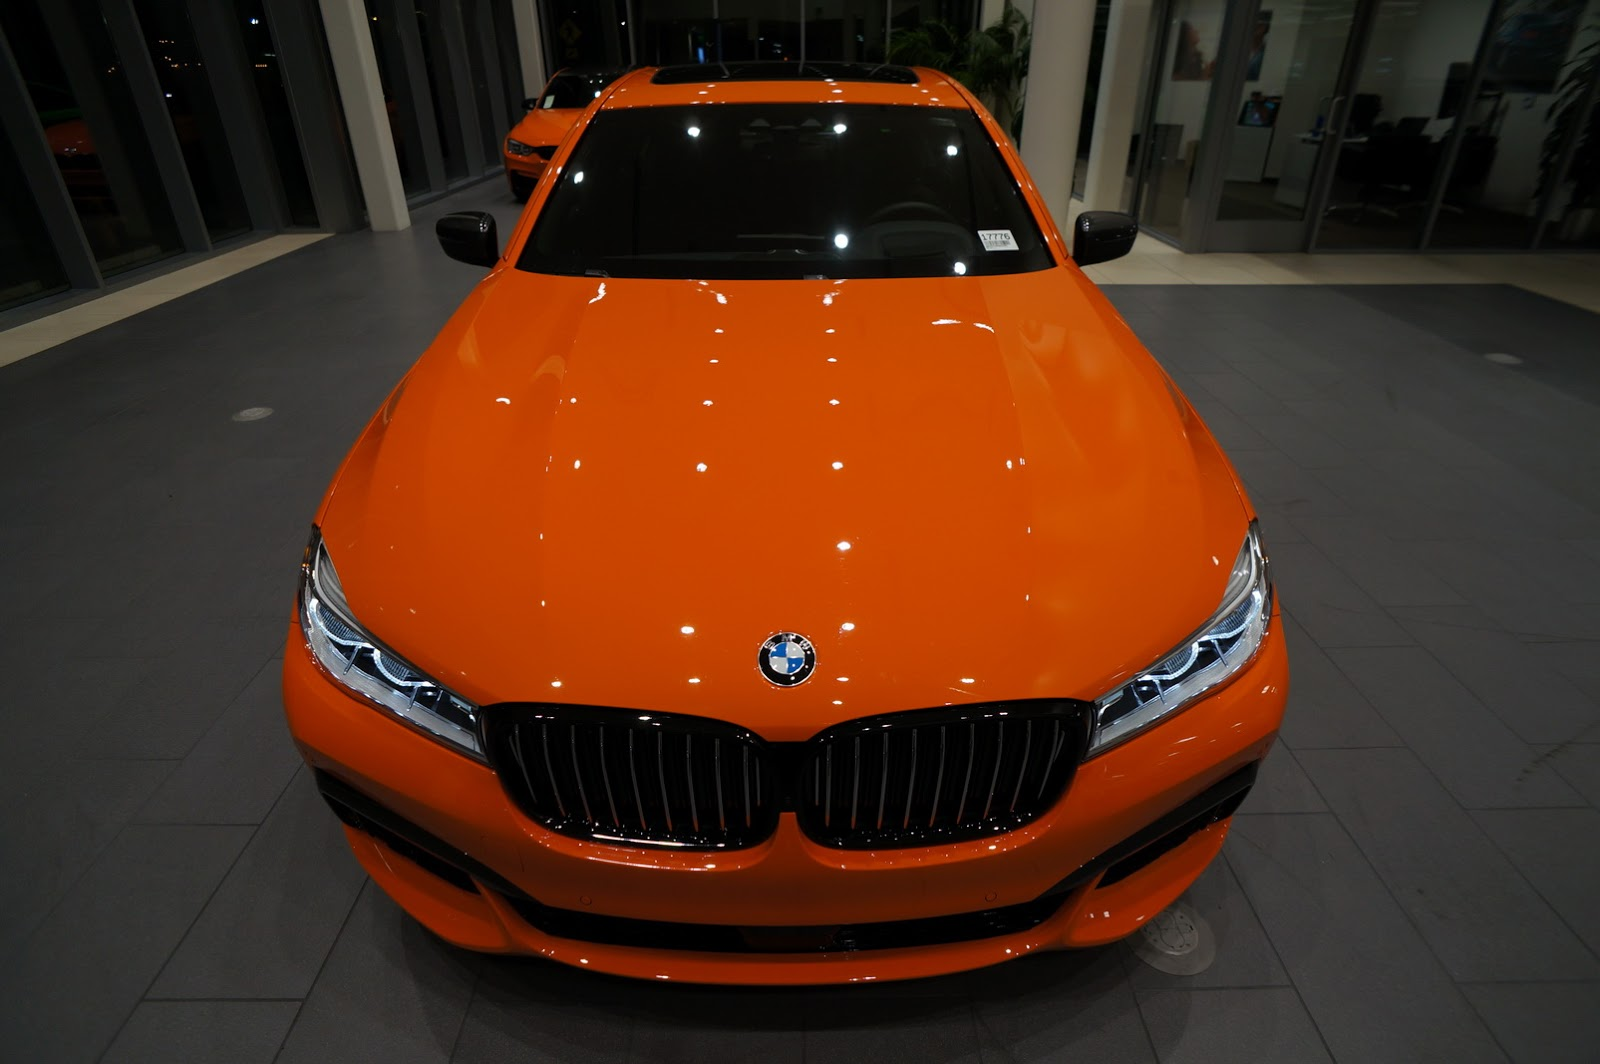 BMW_750i_Fire_Orange_02